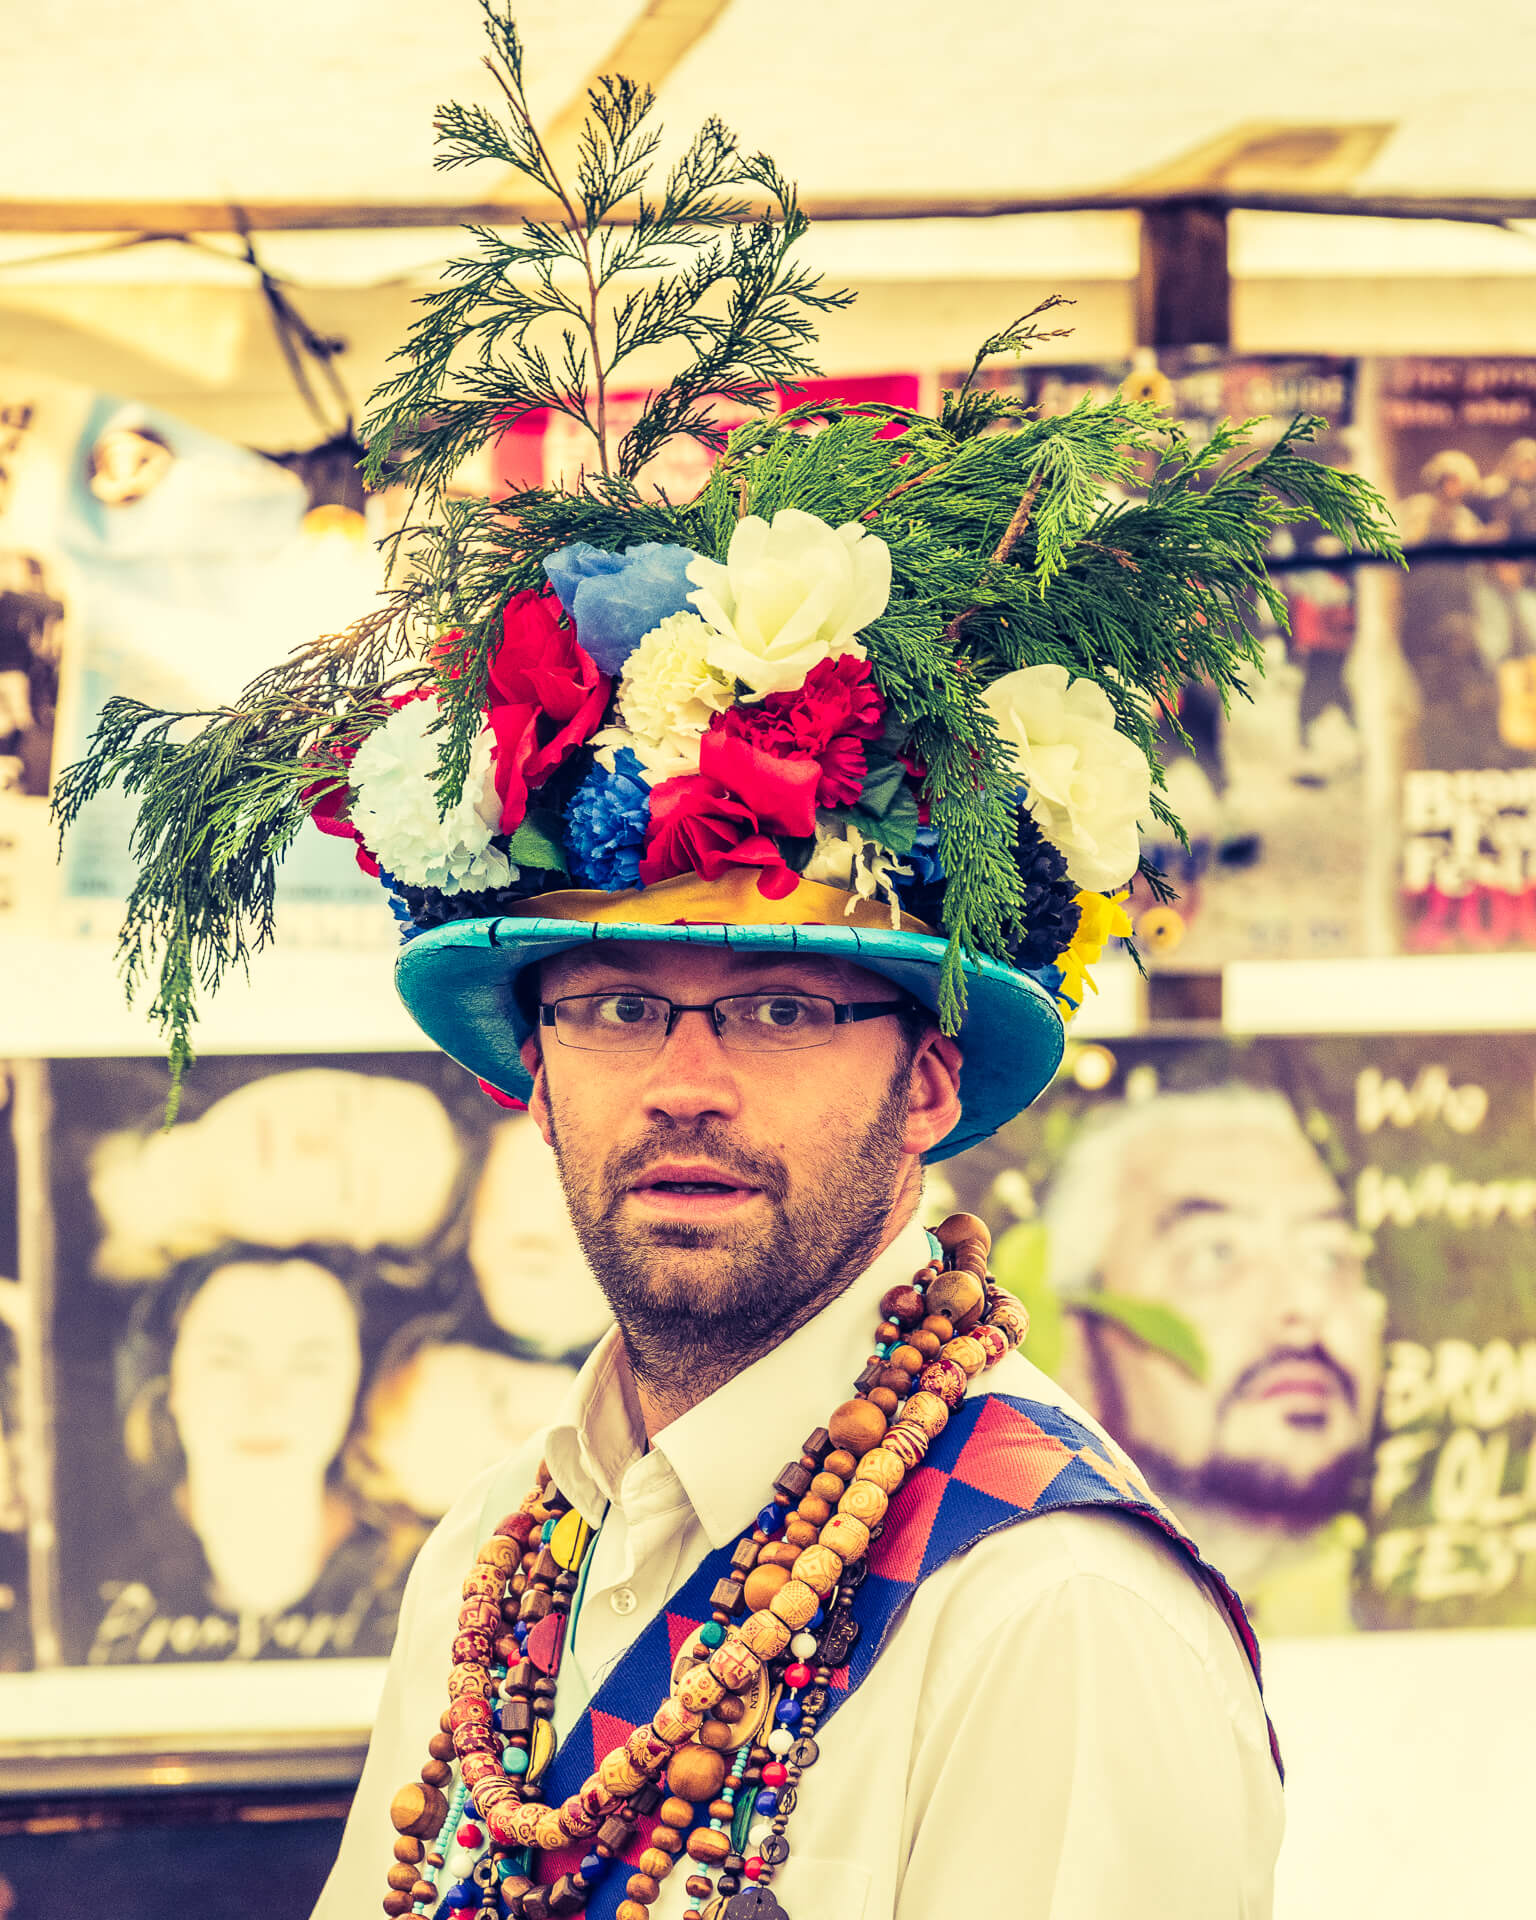 A head & shoulders image of a glasses wearing, bearded member of the Earlsdon Morris Men at the Bromyard Folk Festival in 2018. Seen in a chest up shot he wears a multicoloured multi-foilage festooned hat, along with a red and blue diamond patterned waist coat over a white shirt, and around his neck are several bead type necklaces consisting of various sized wooden beads.